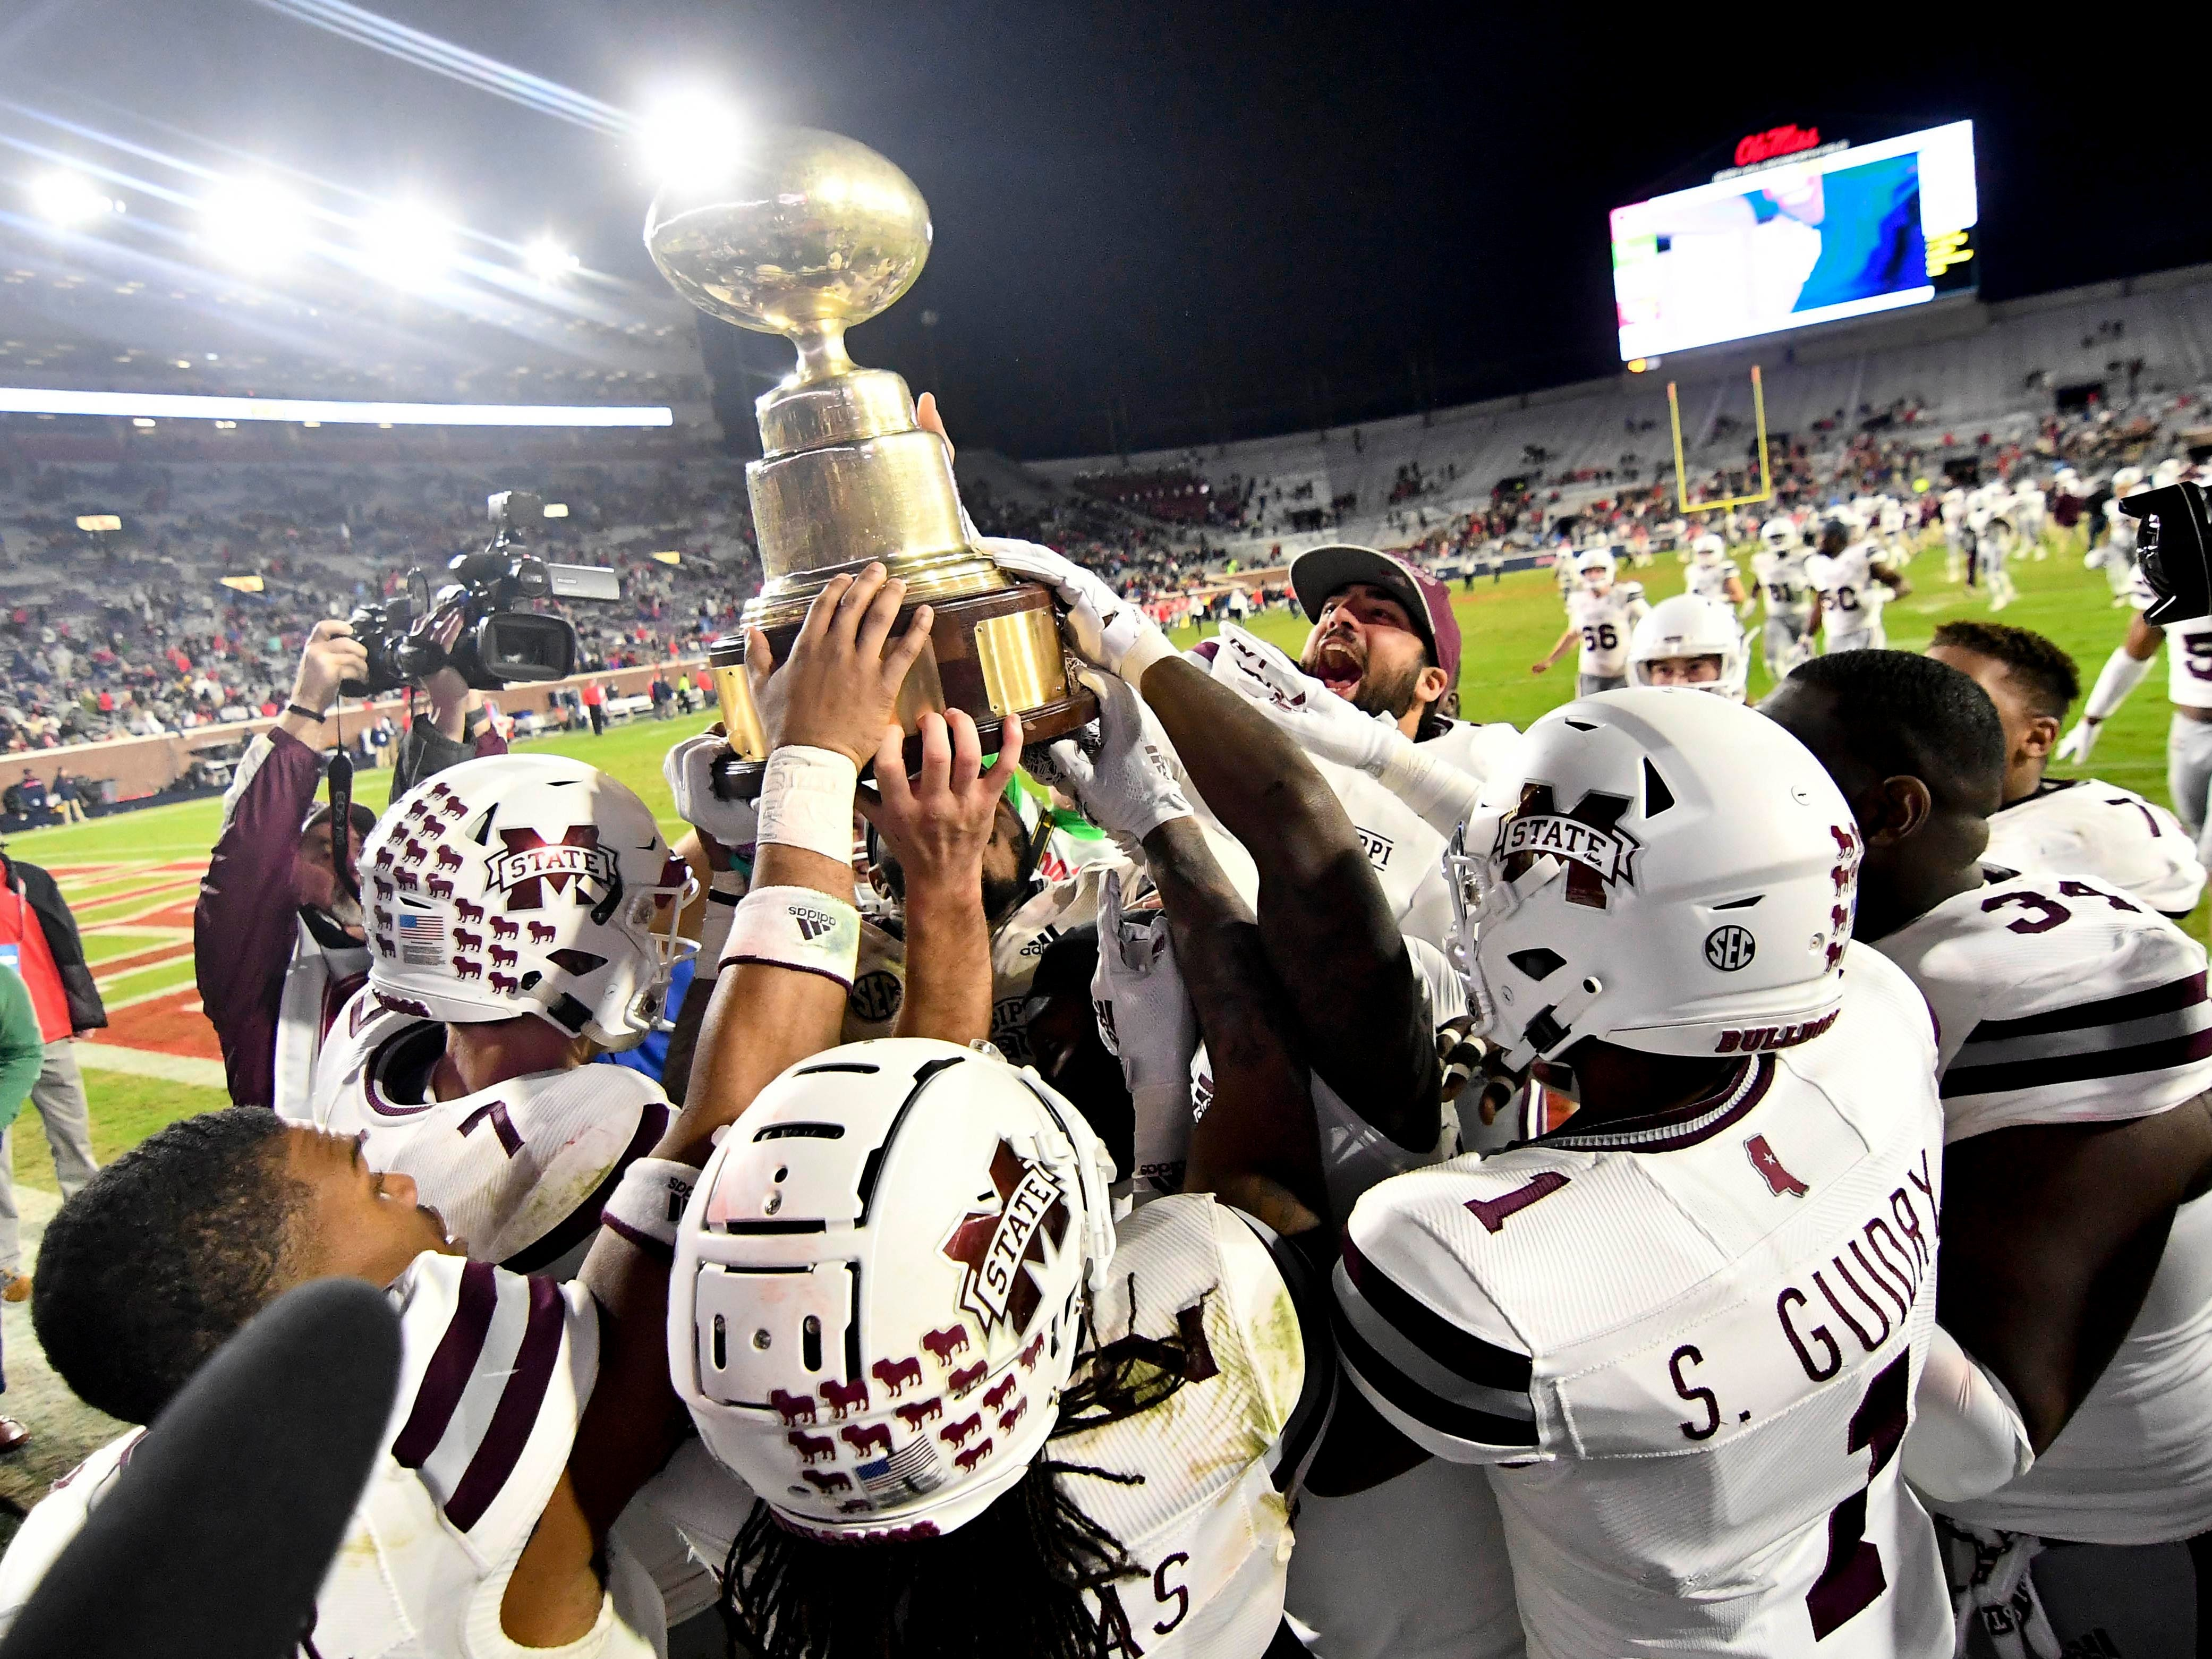 Mississippi State players celebrate with the Egg Bowl trophy after defeating Mississippi at Vaught-Hemingway Stadium.